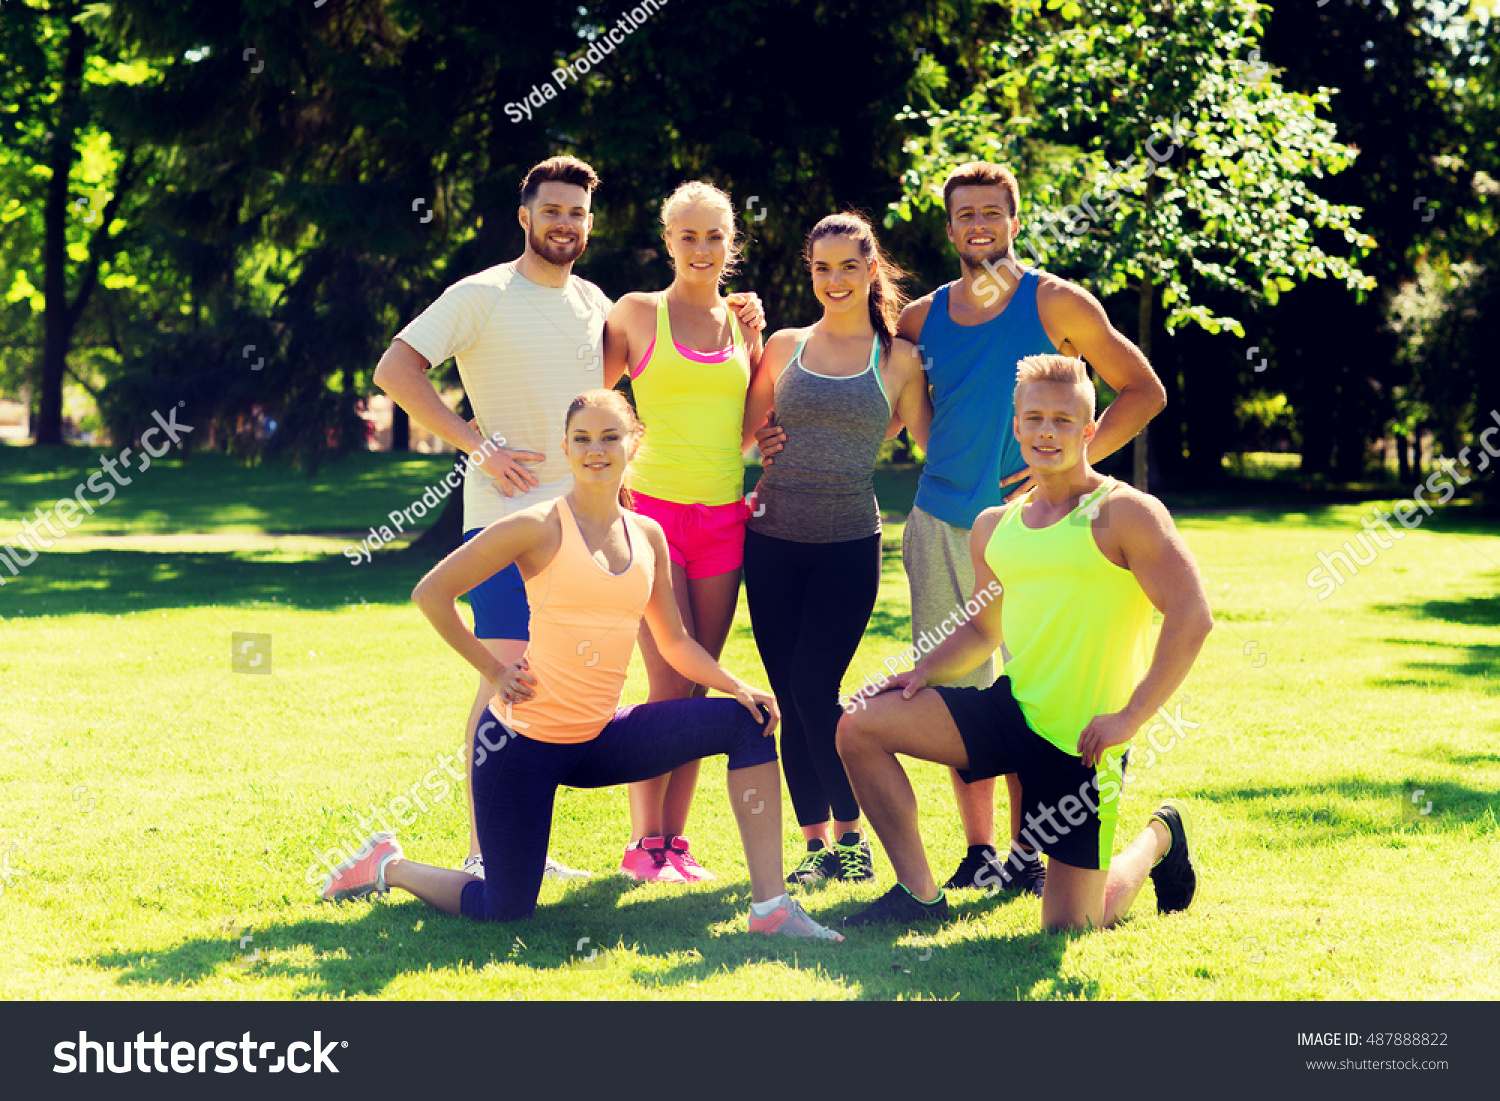 fitness sport friendship healthy lifestyle concept stock photo 487888822 shutterstock. Black Bedroom Furniture Sets. Home Design Ideas